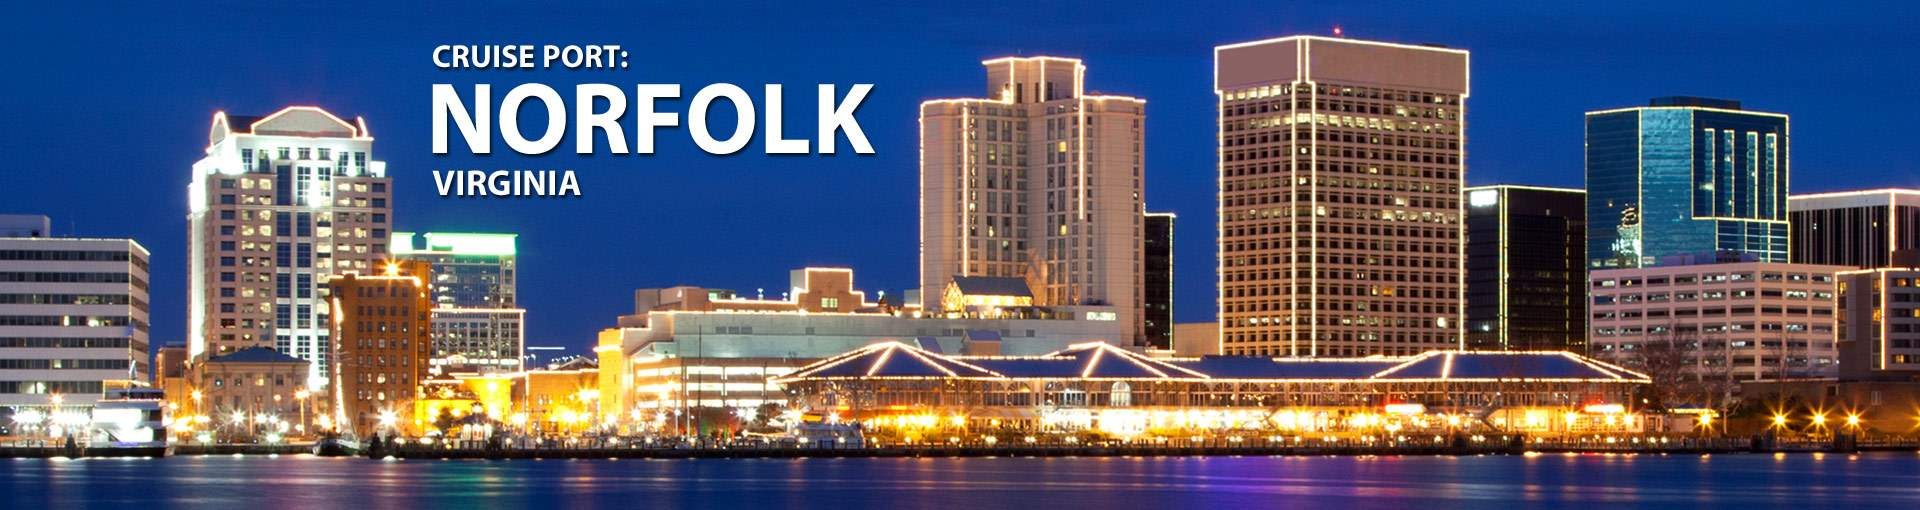 Cruise Port: Norfolk, Virginia